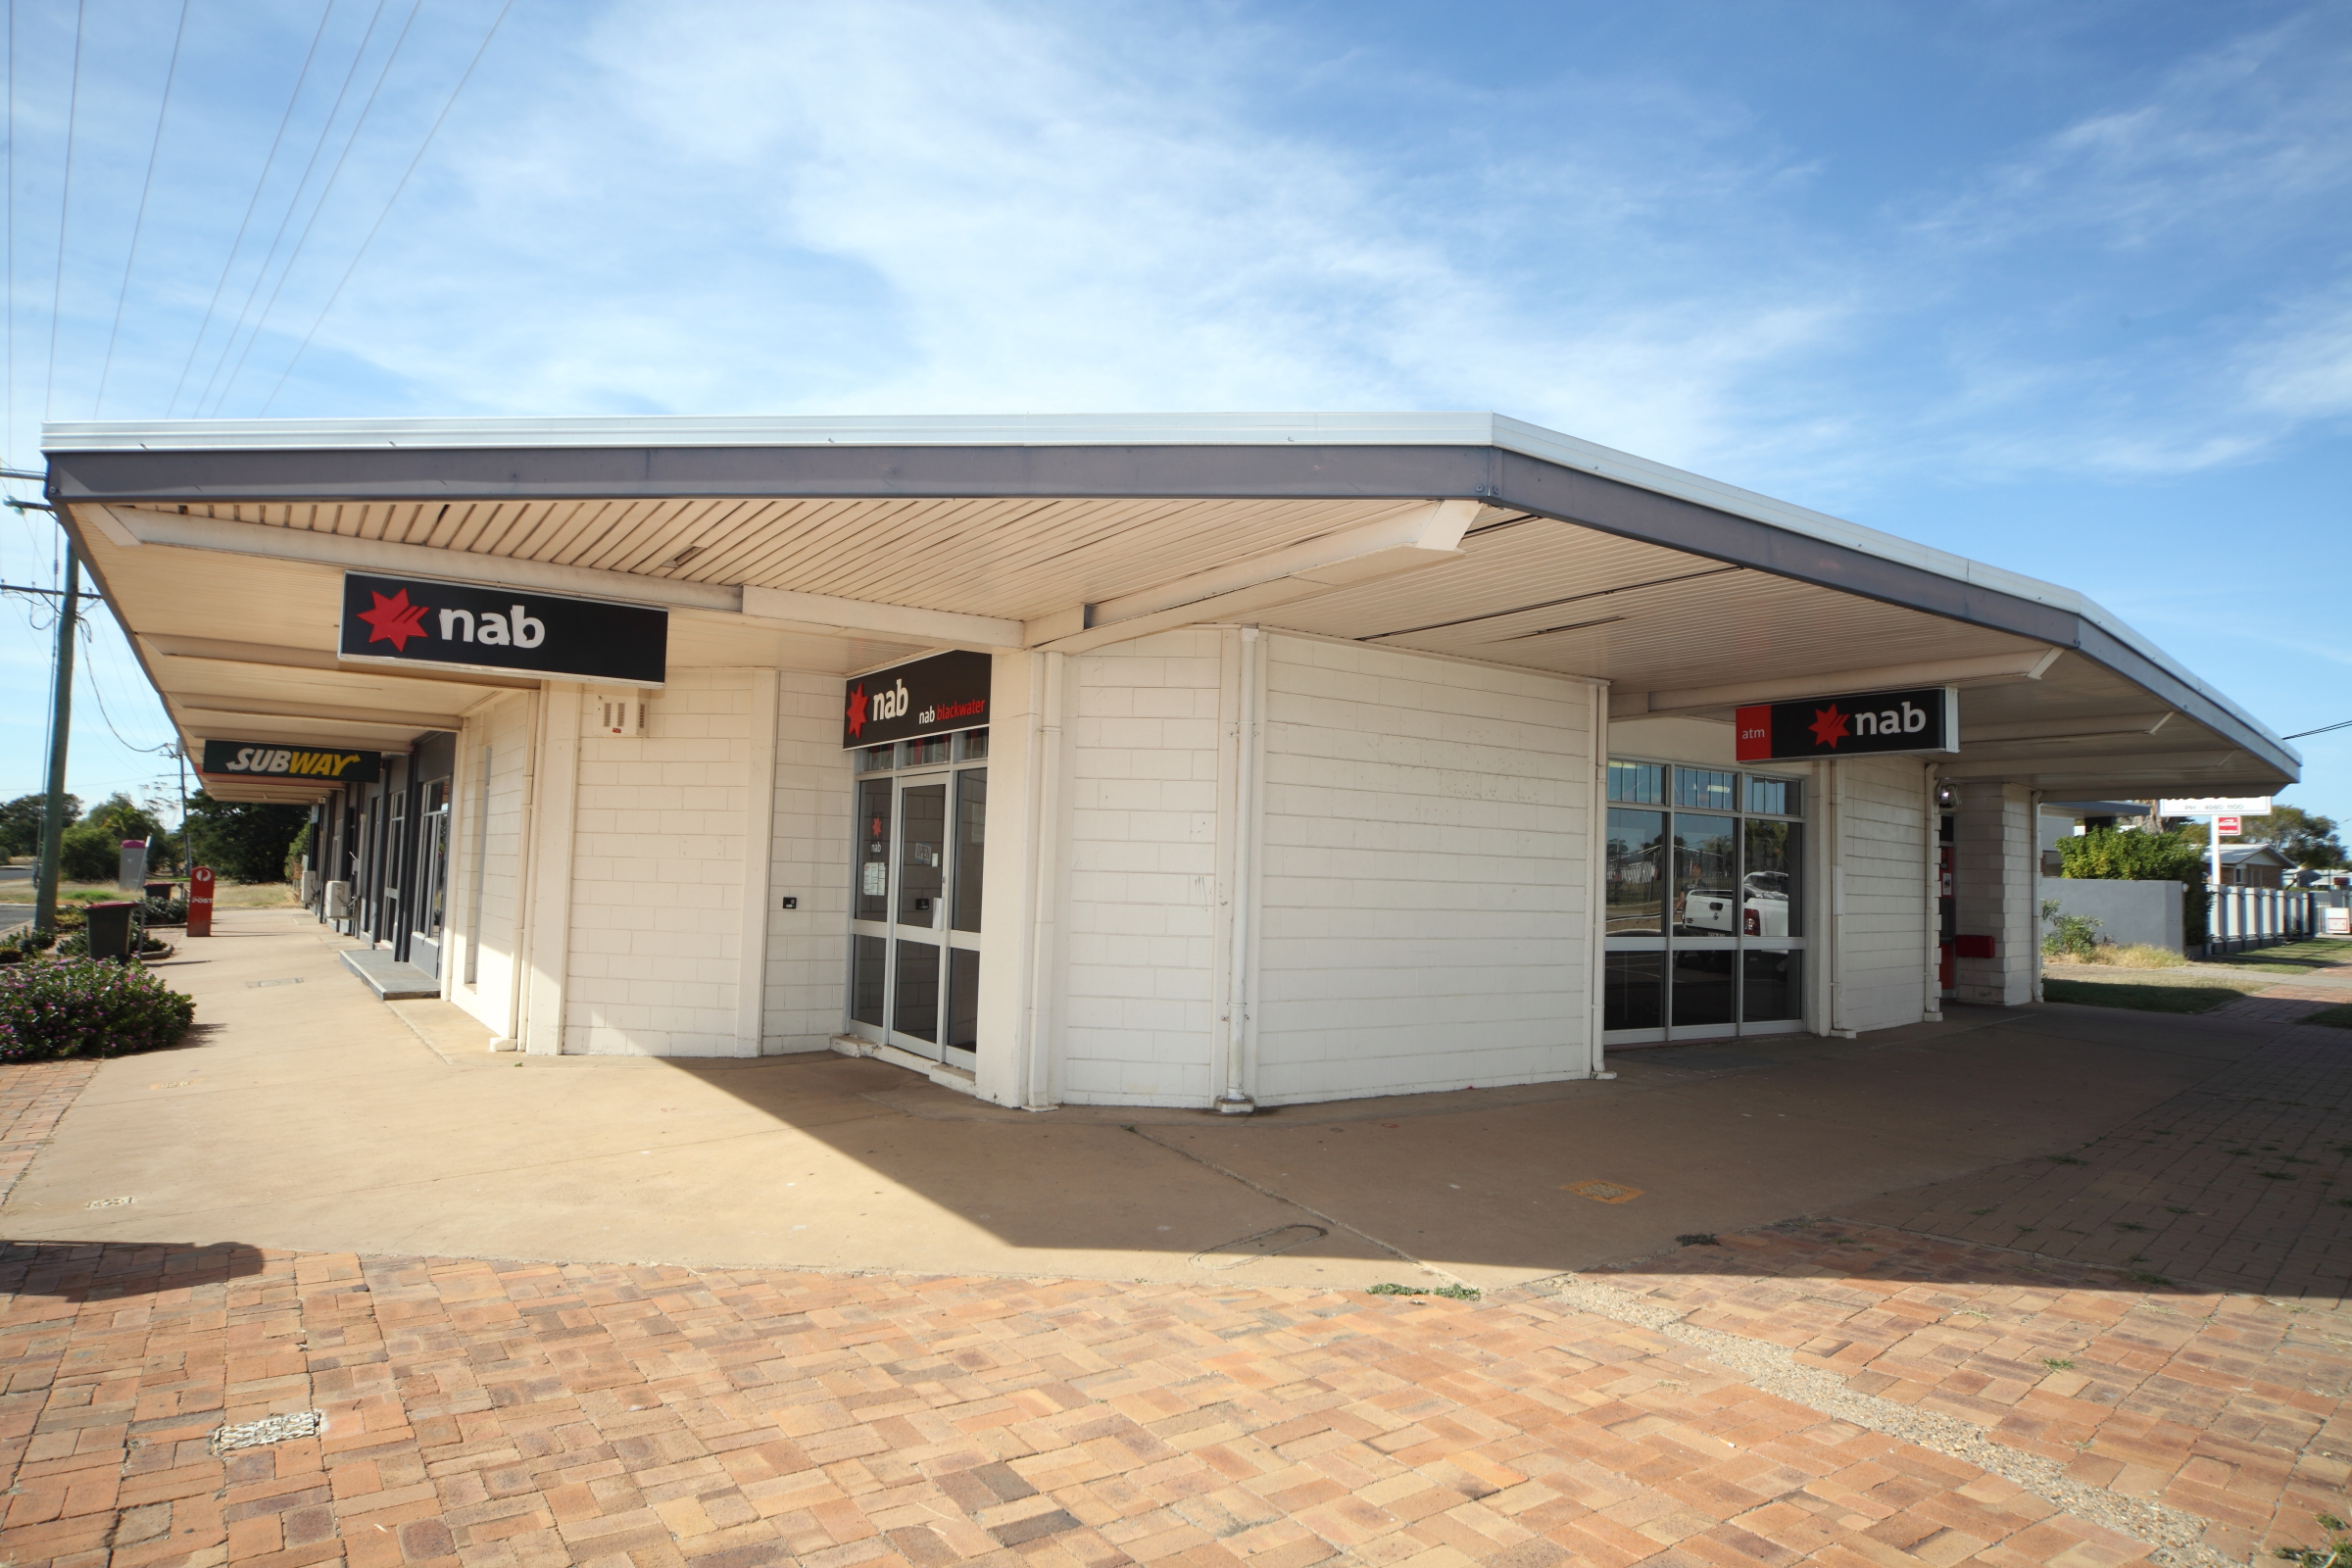 High Yielding Bank Investment – $800K Buyers. Occupied 20 Years – Recent Refurbishment.